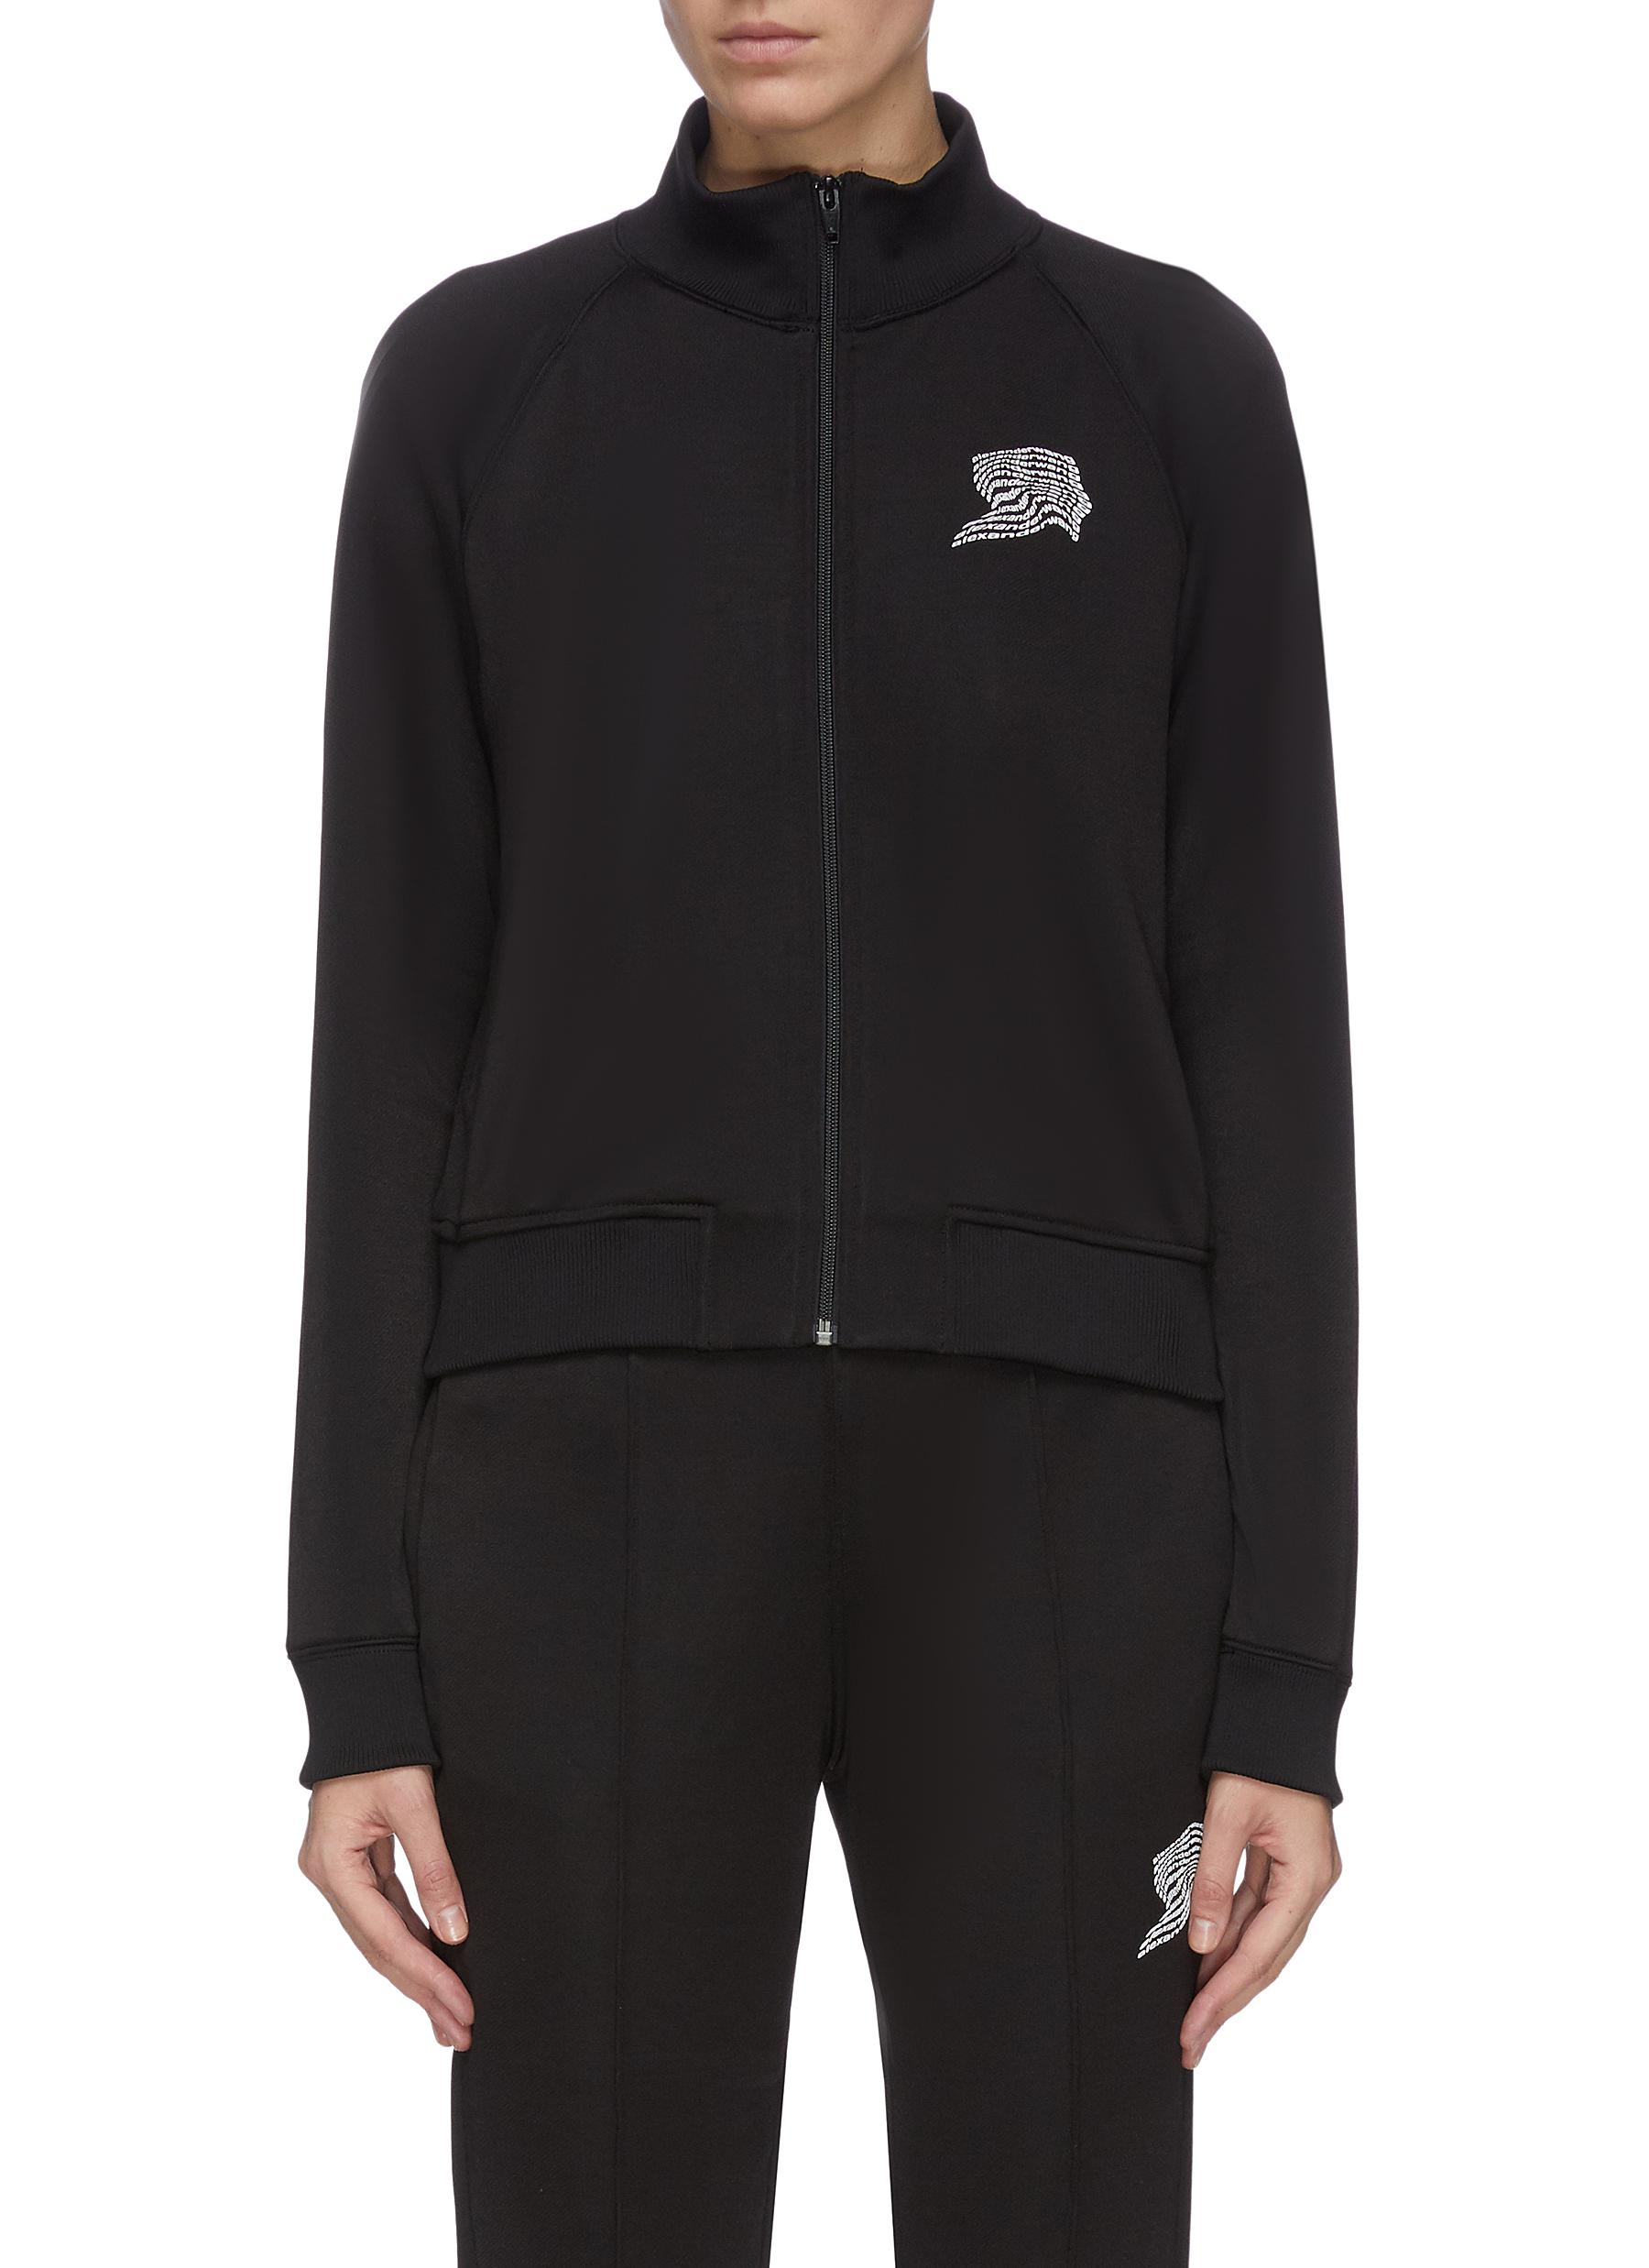 Buy Alexanderwang.T Jackets French terry embroidered track jacket